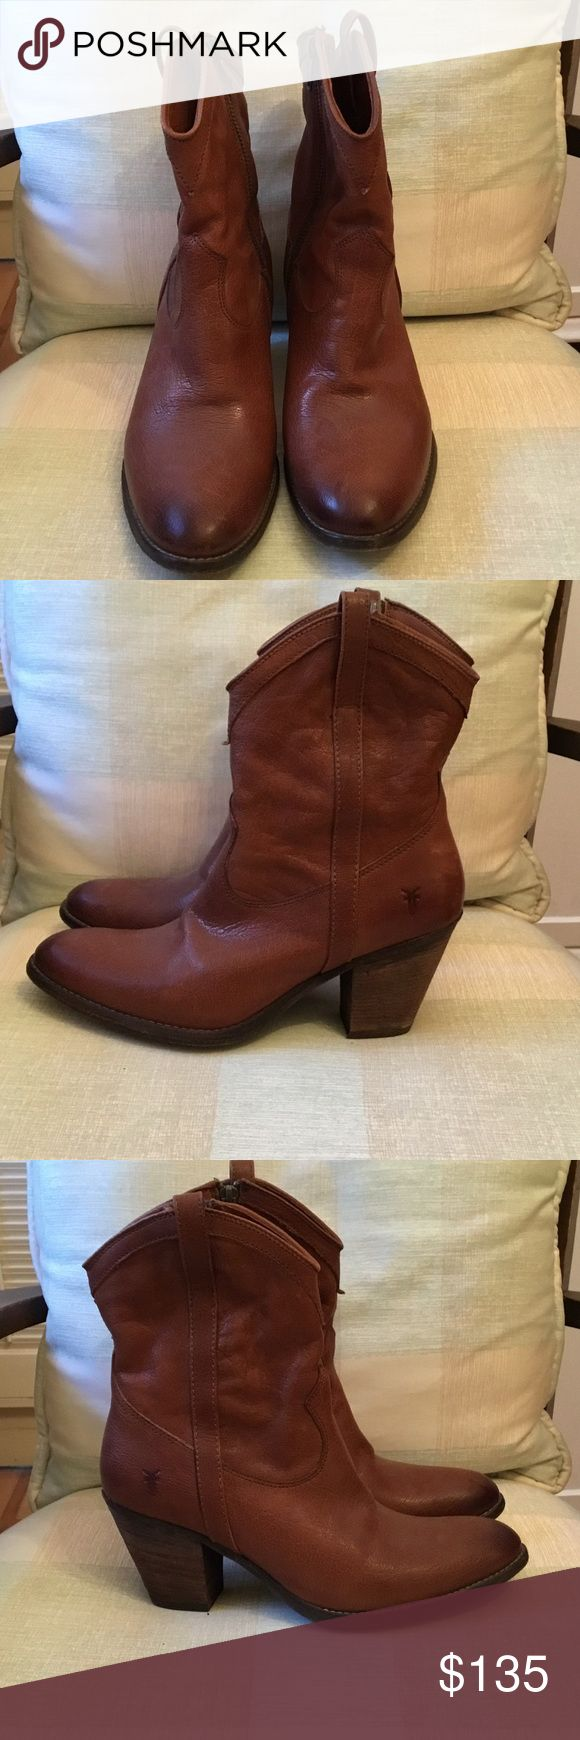 Cute FRYE Cowboy boots FRYE boots light soft brown leather. Zipper sides. 2.5 inch heel. Lightly worn. Maybe 3 times. Frye Shoes Ankle Boots & Booties